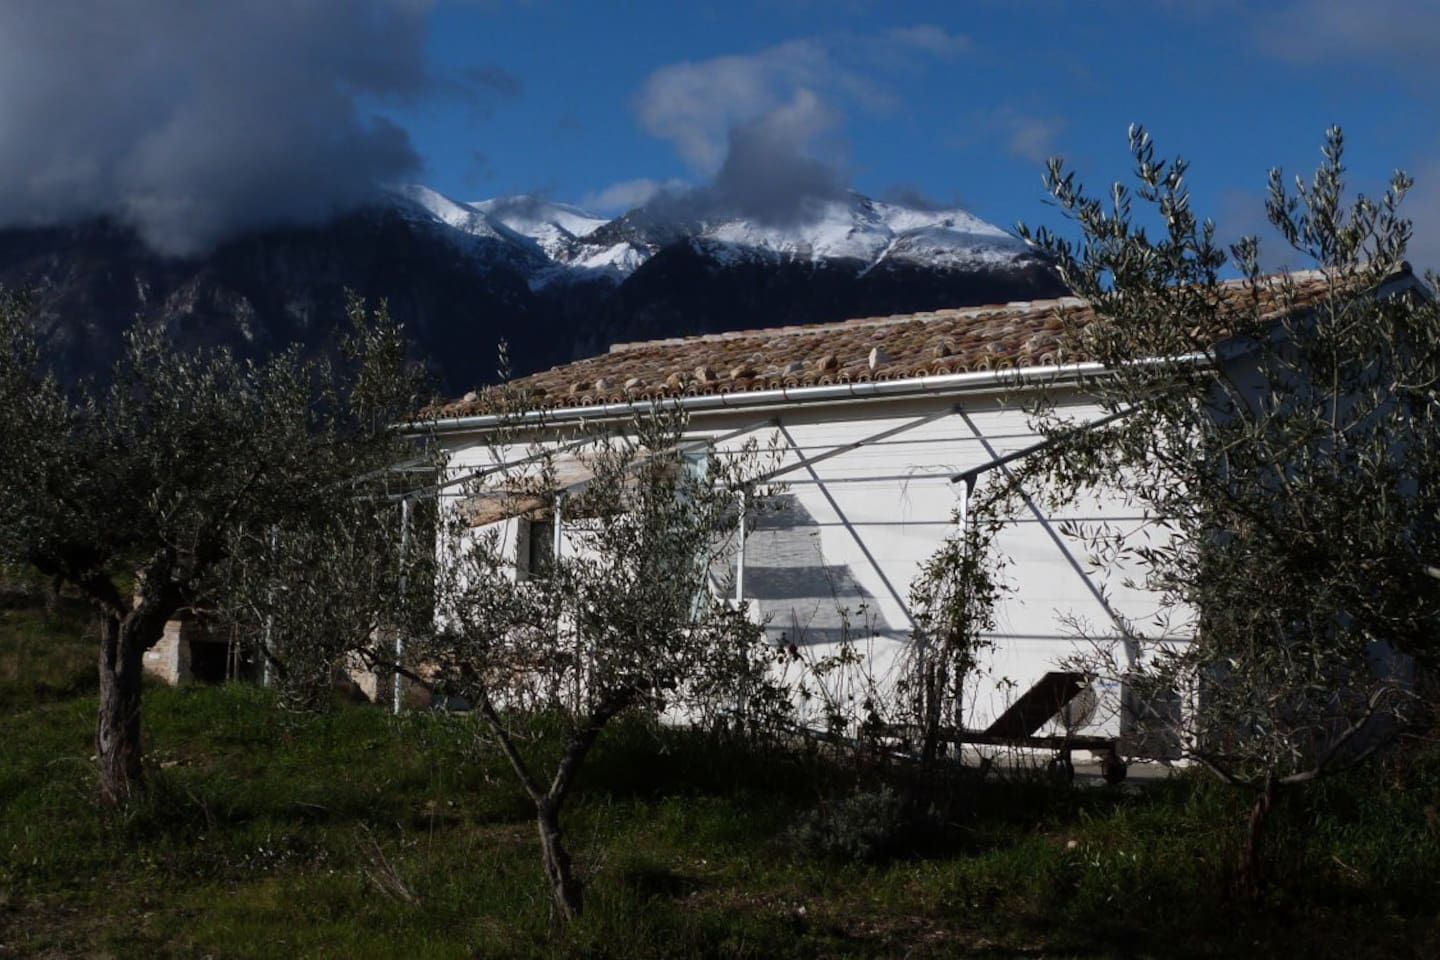 The house and view of the Maiella mountains. January 2014